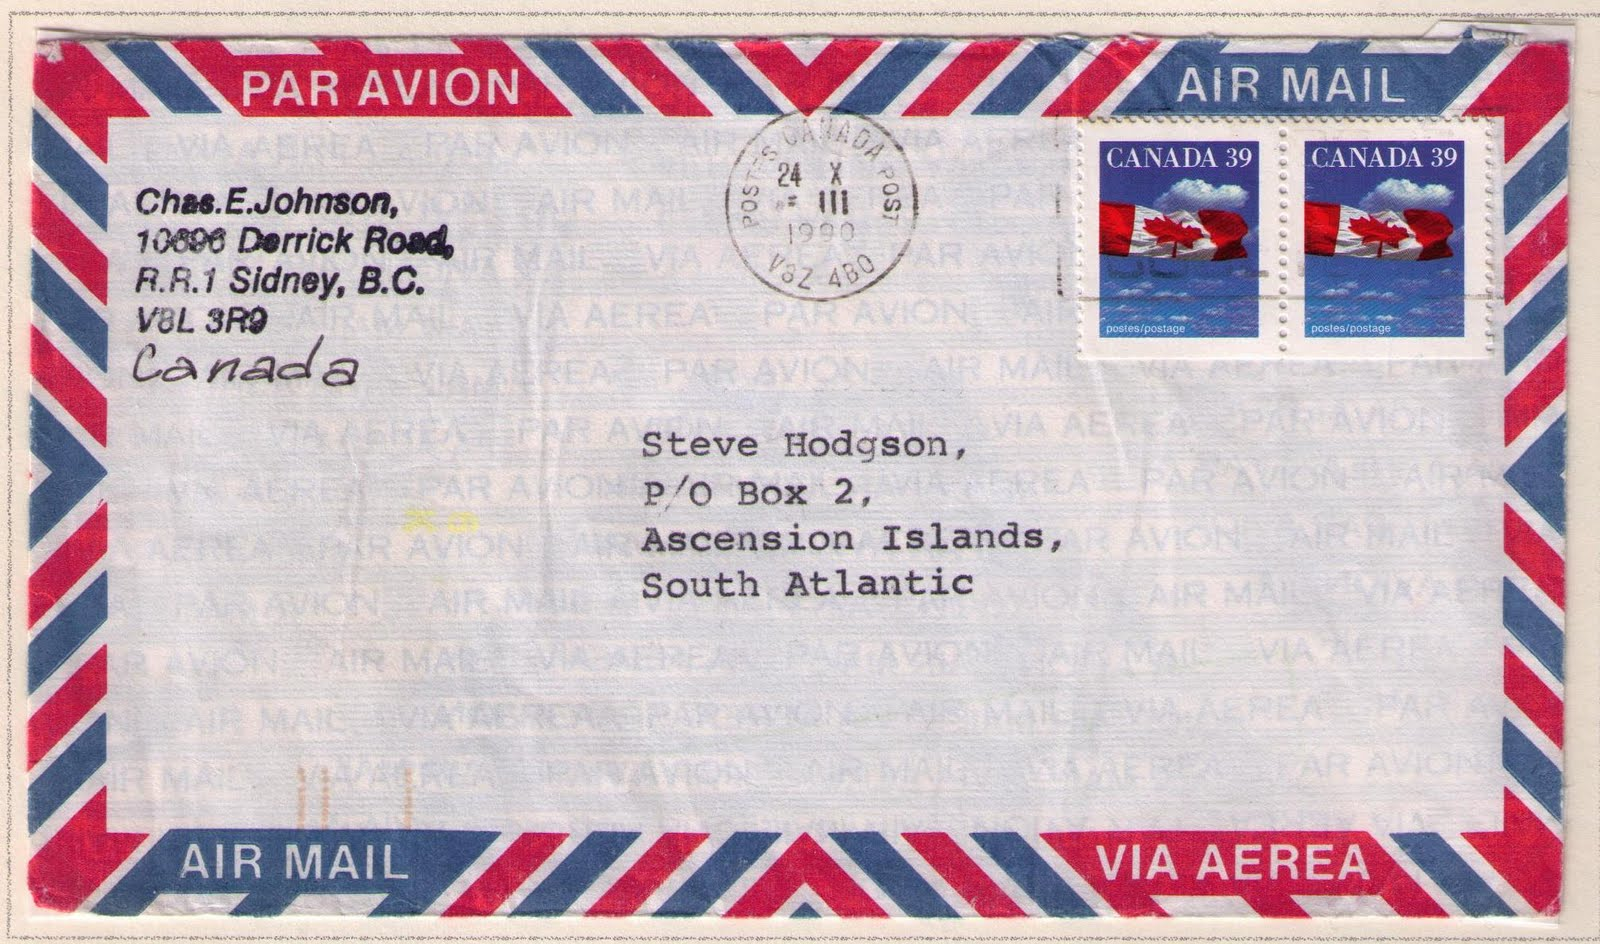 vancouver to ascension island october 24 1960 78 cents international letter rate